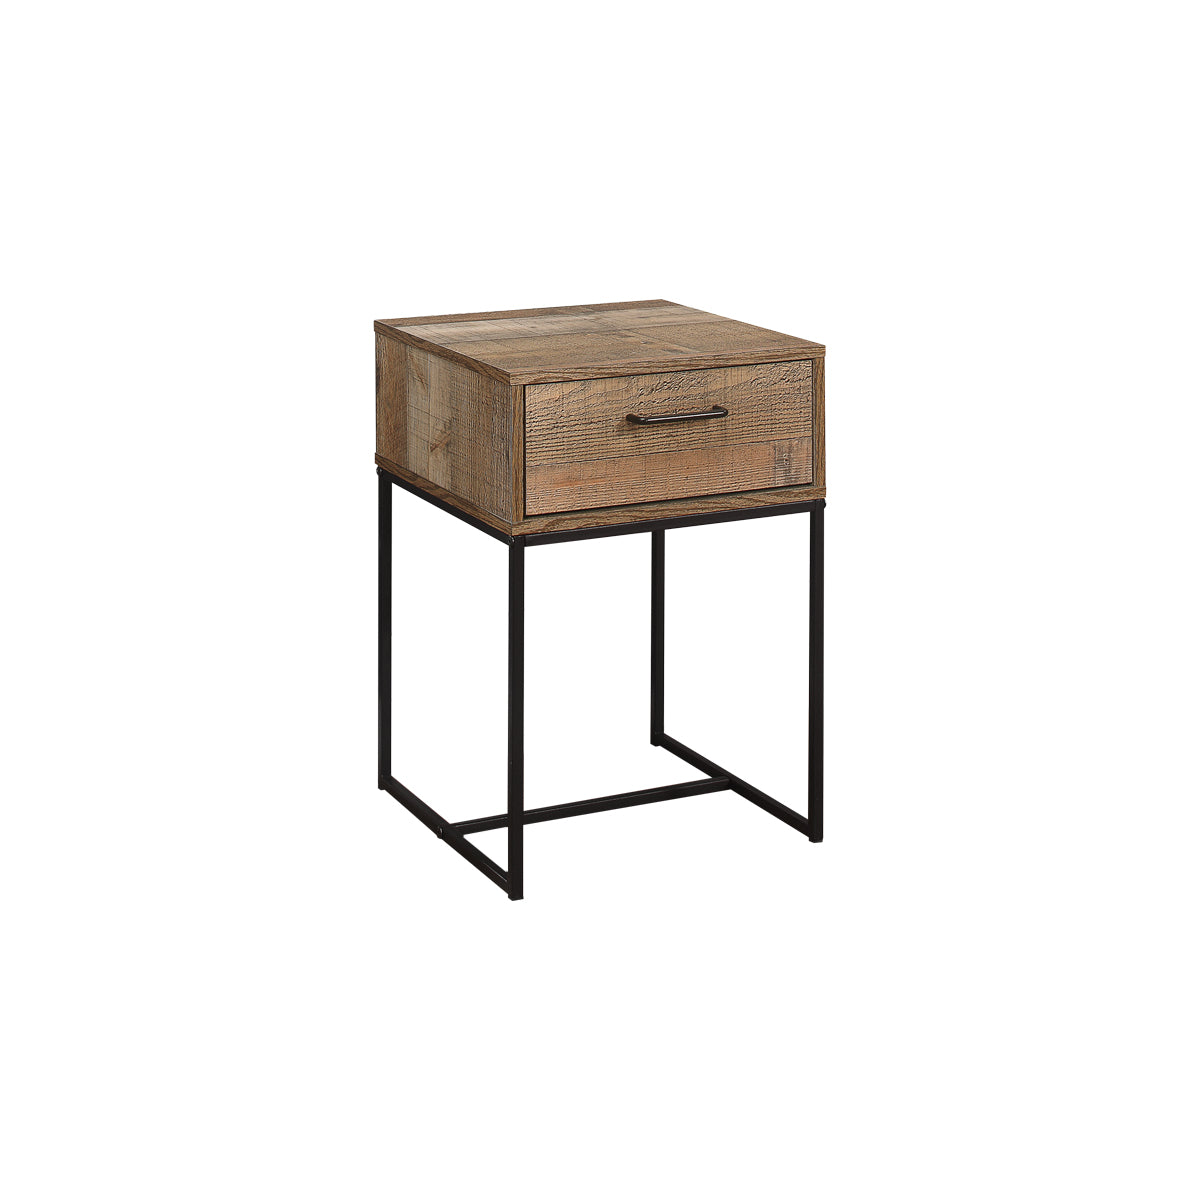 Metro 1 Drawer Narrow Bedside Table - Ezzo